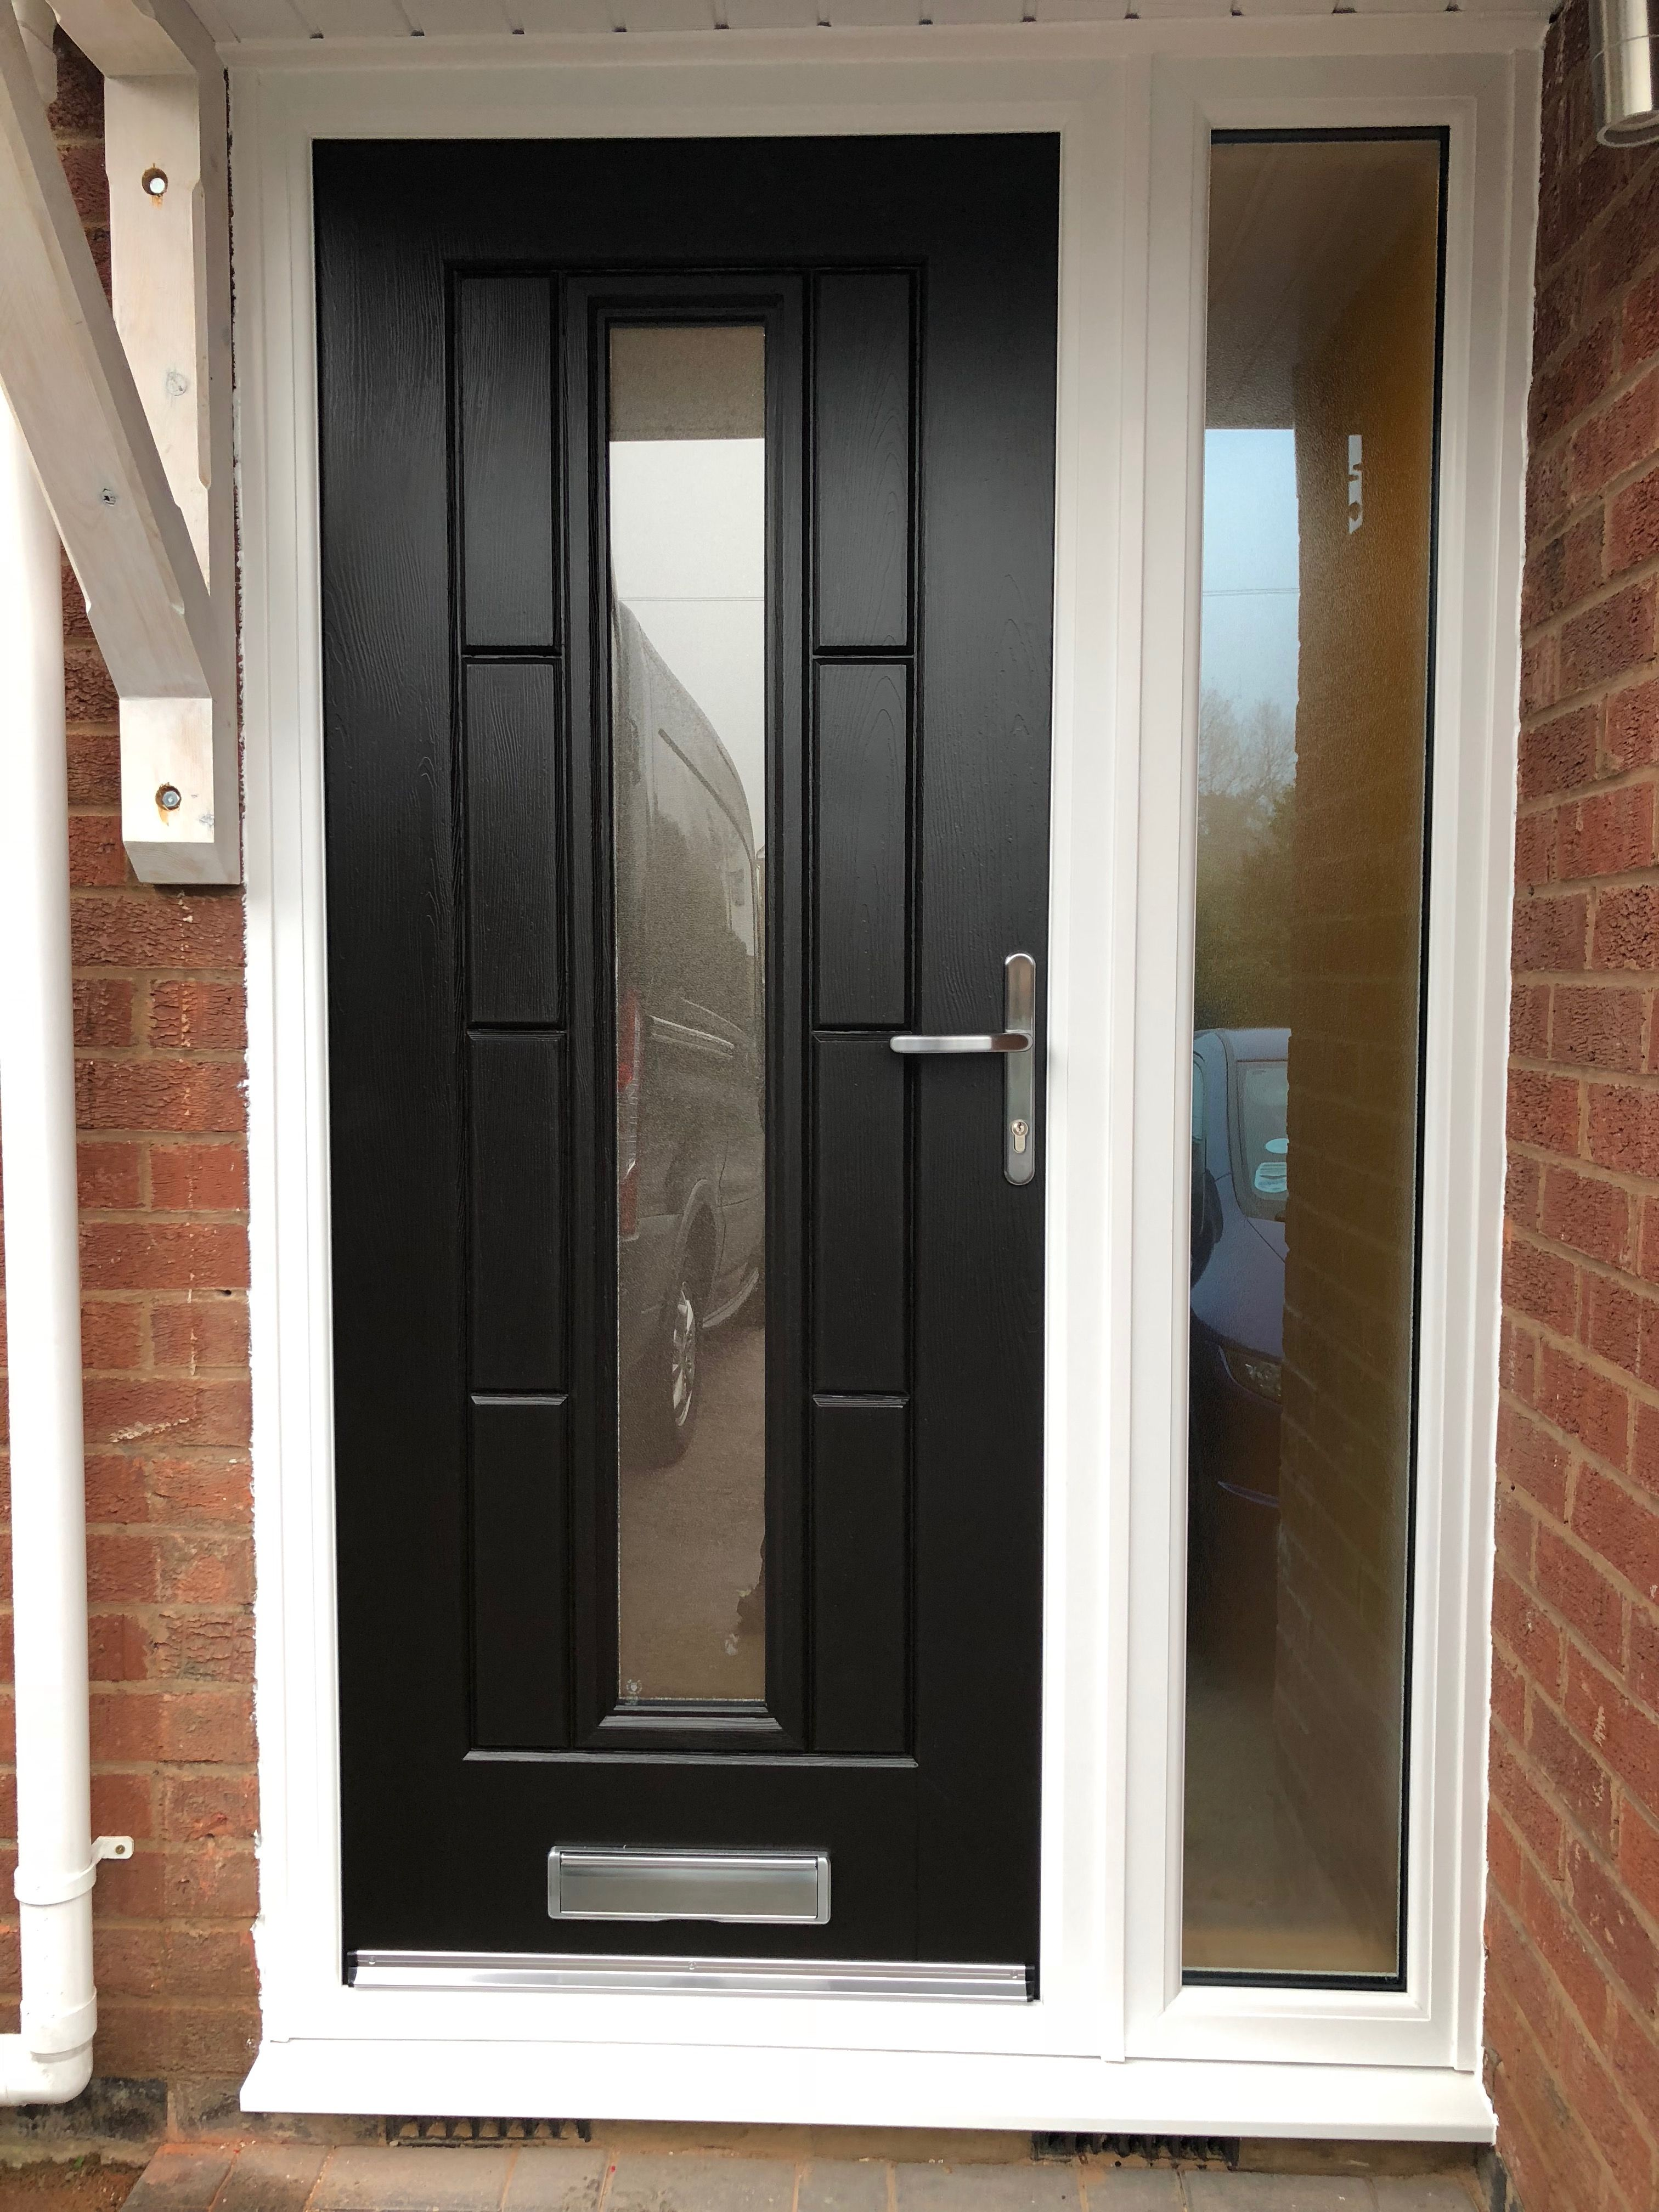 Rockdoor Vermont With Sandstone Backing Glass In Black